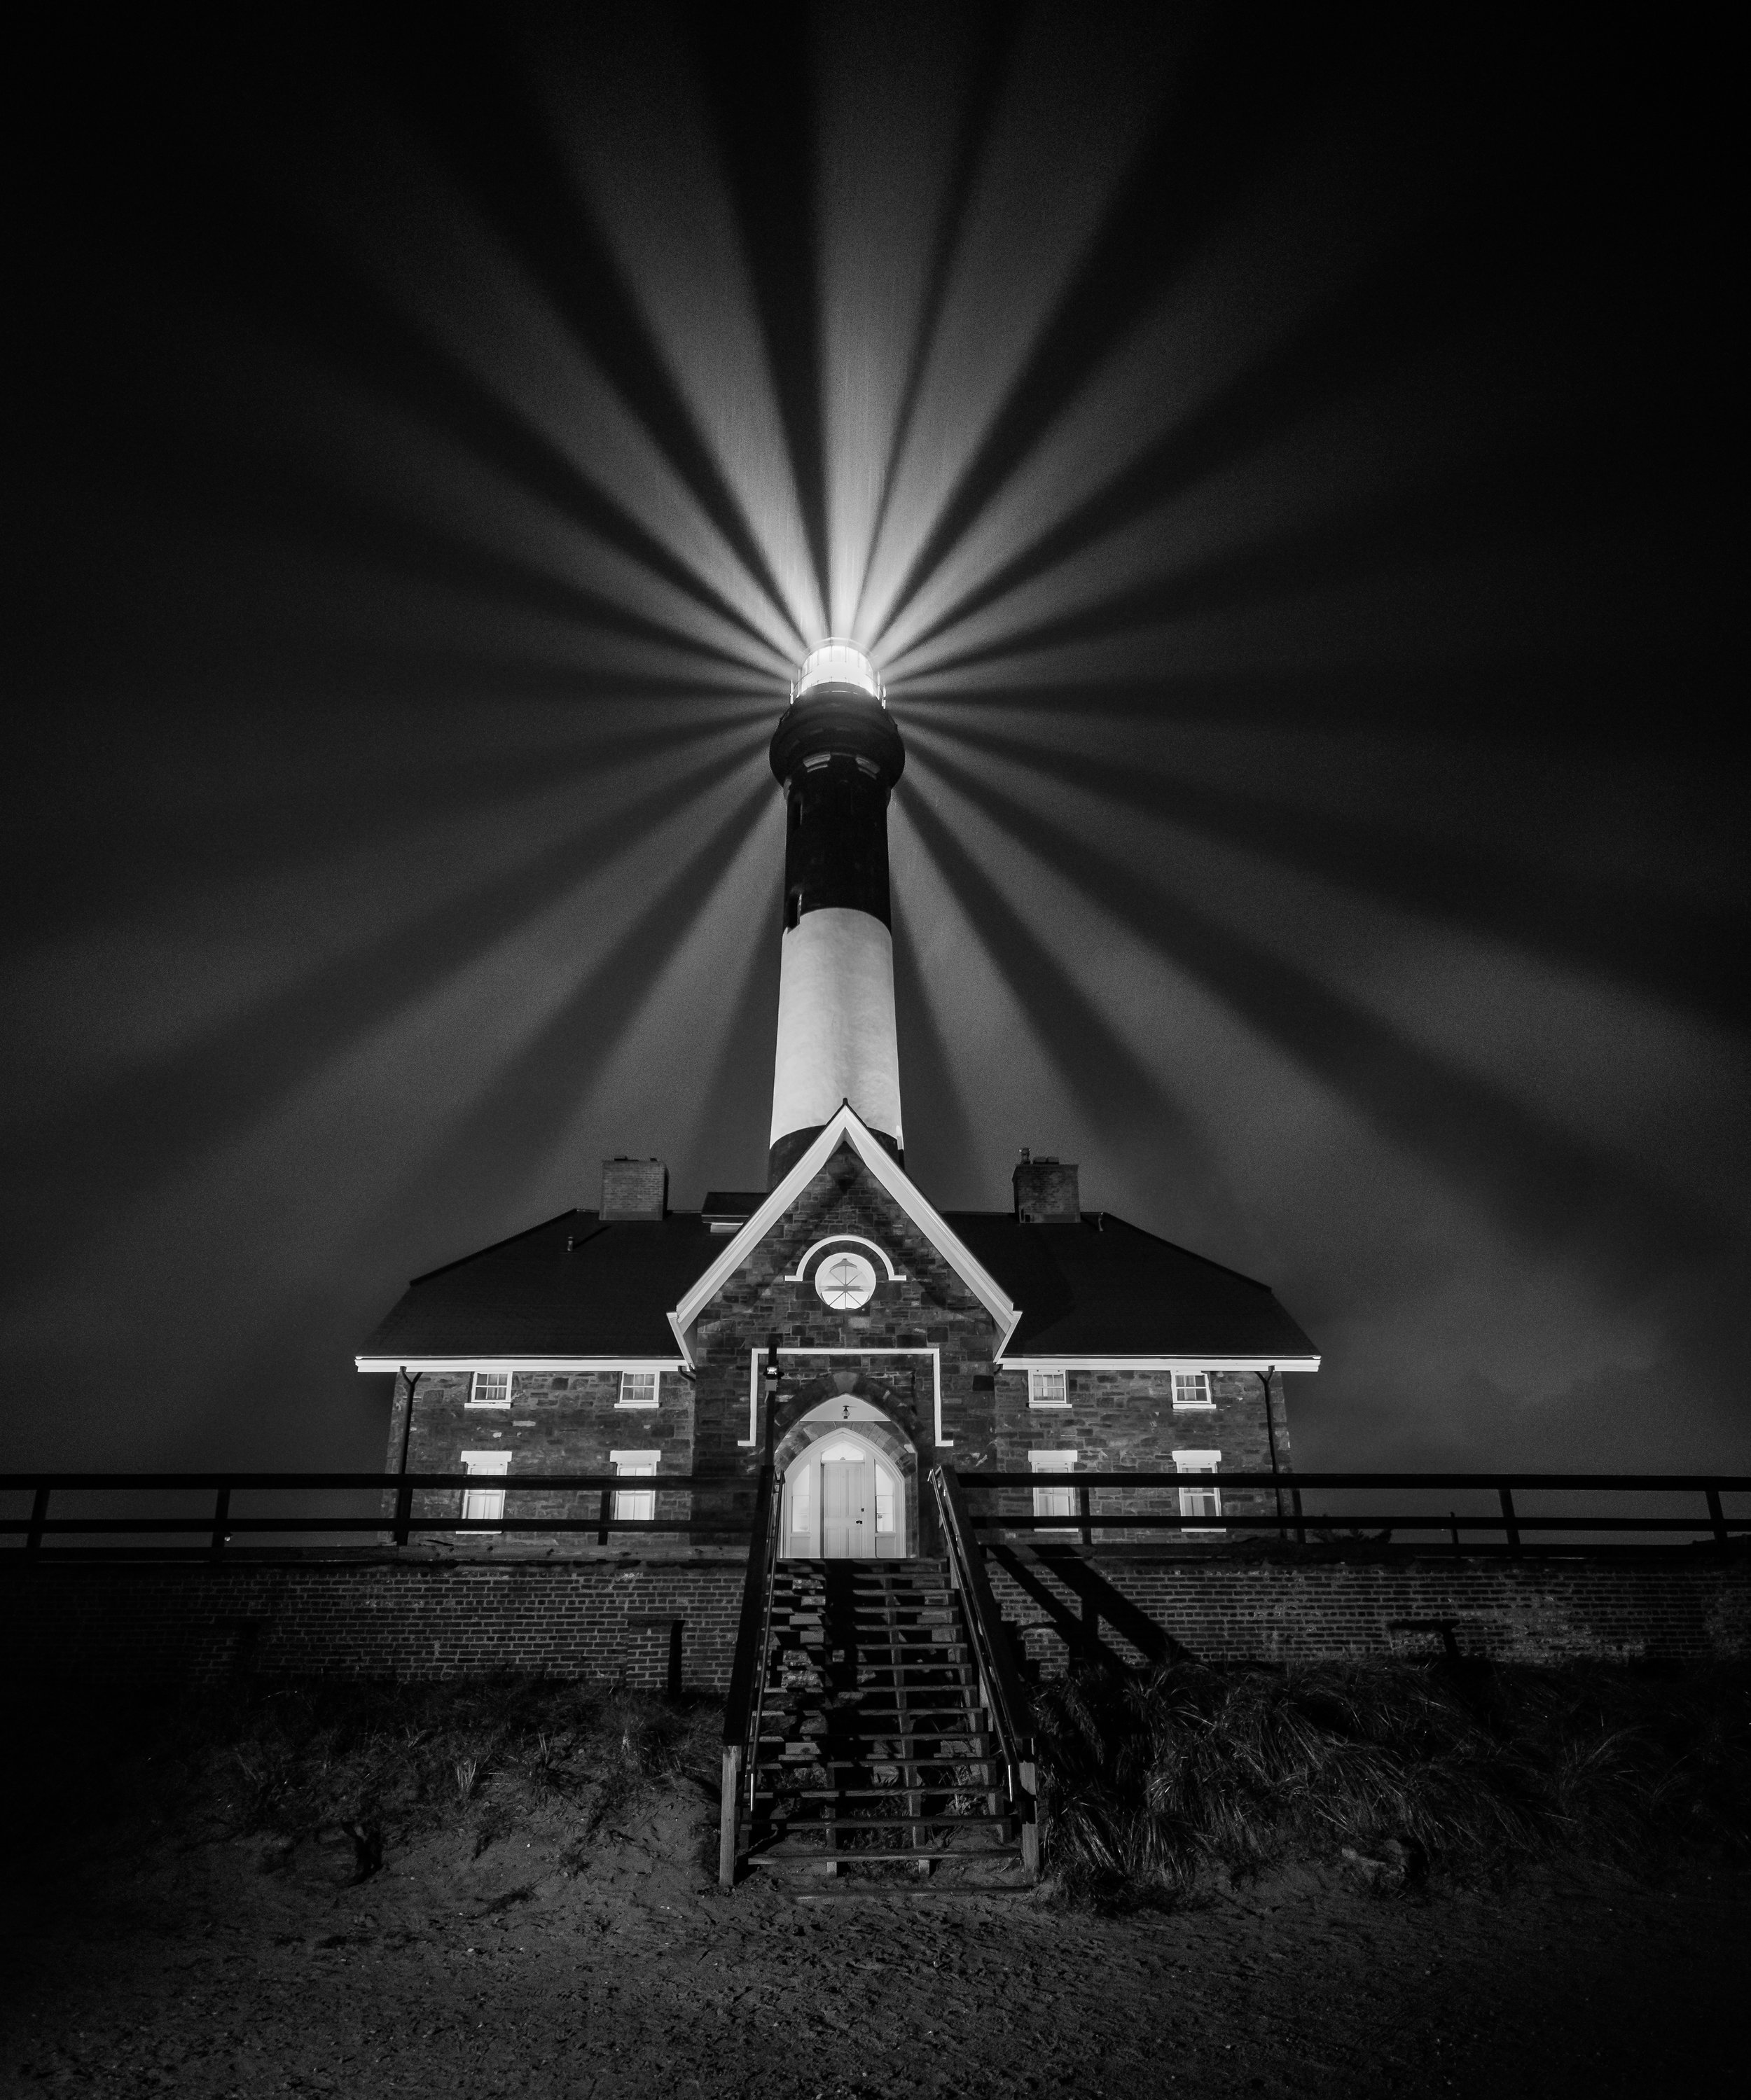 Fire Island Lighthouse. Nikon D750,  Irix 15mm f/2.4  lens. Multiple exposures at 1/2 second, f/2.4, ISO 6400.